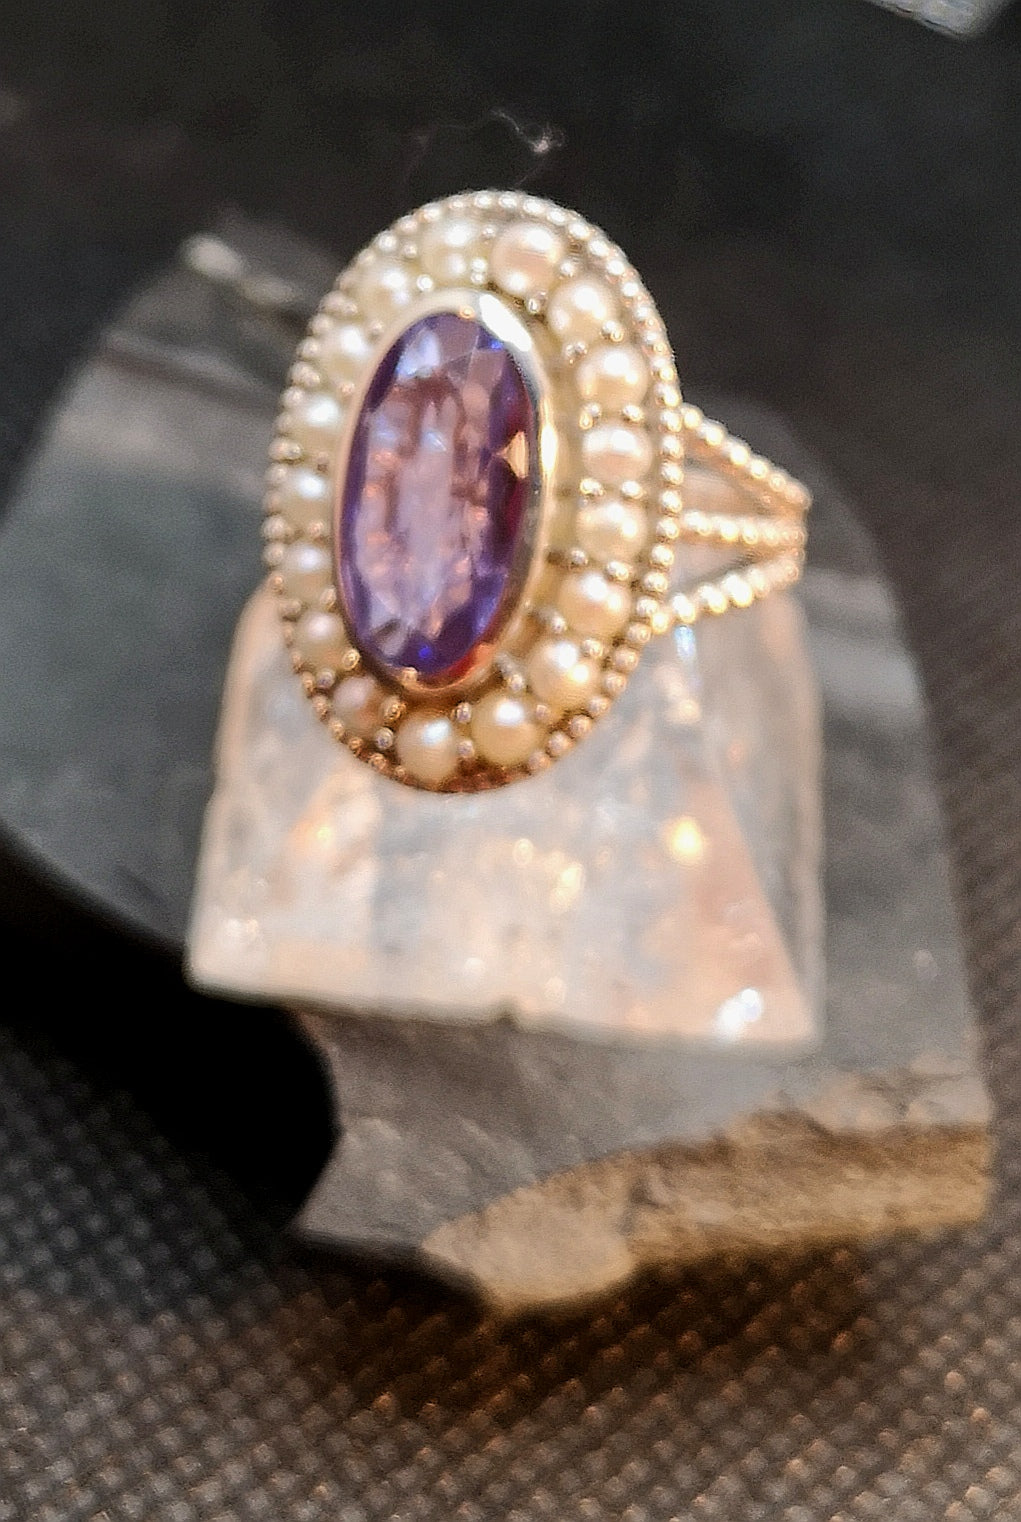 Lilac quartz sterling silver ring with genuine pearl